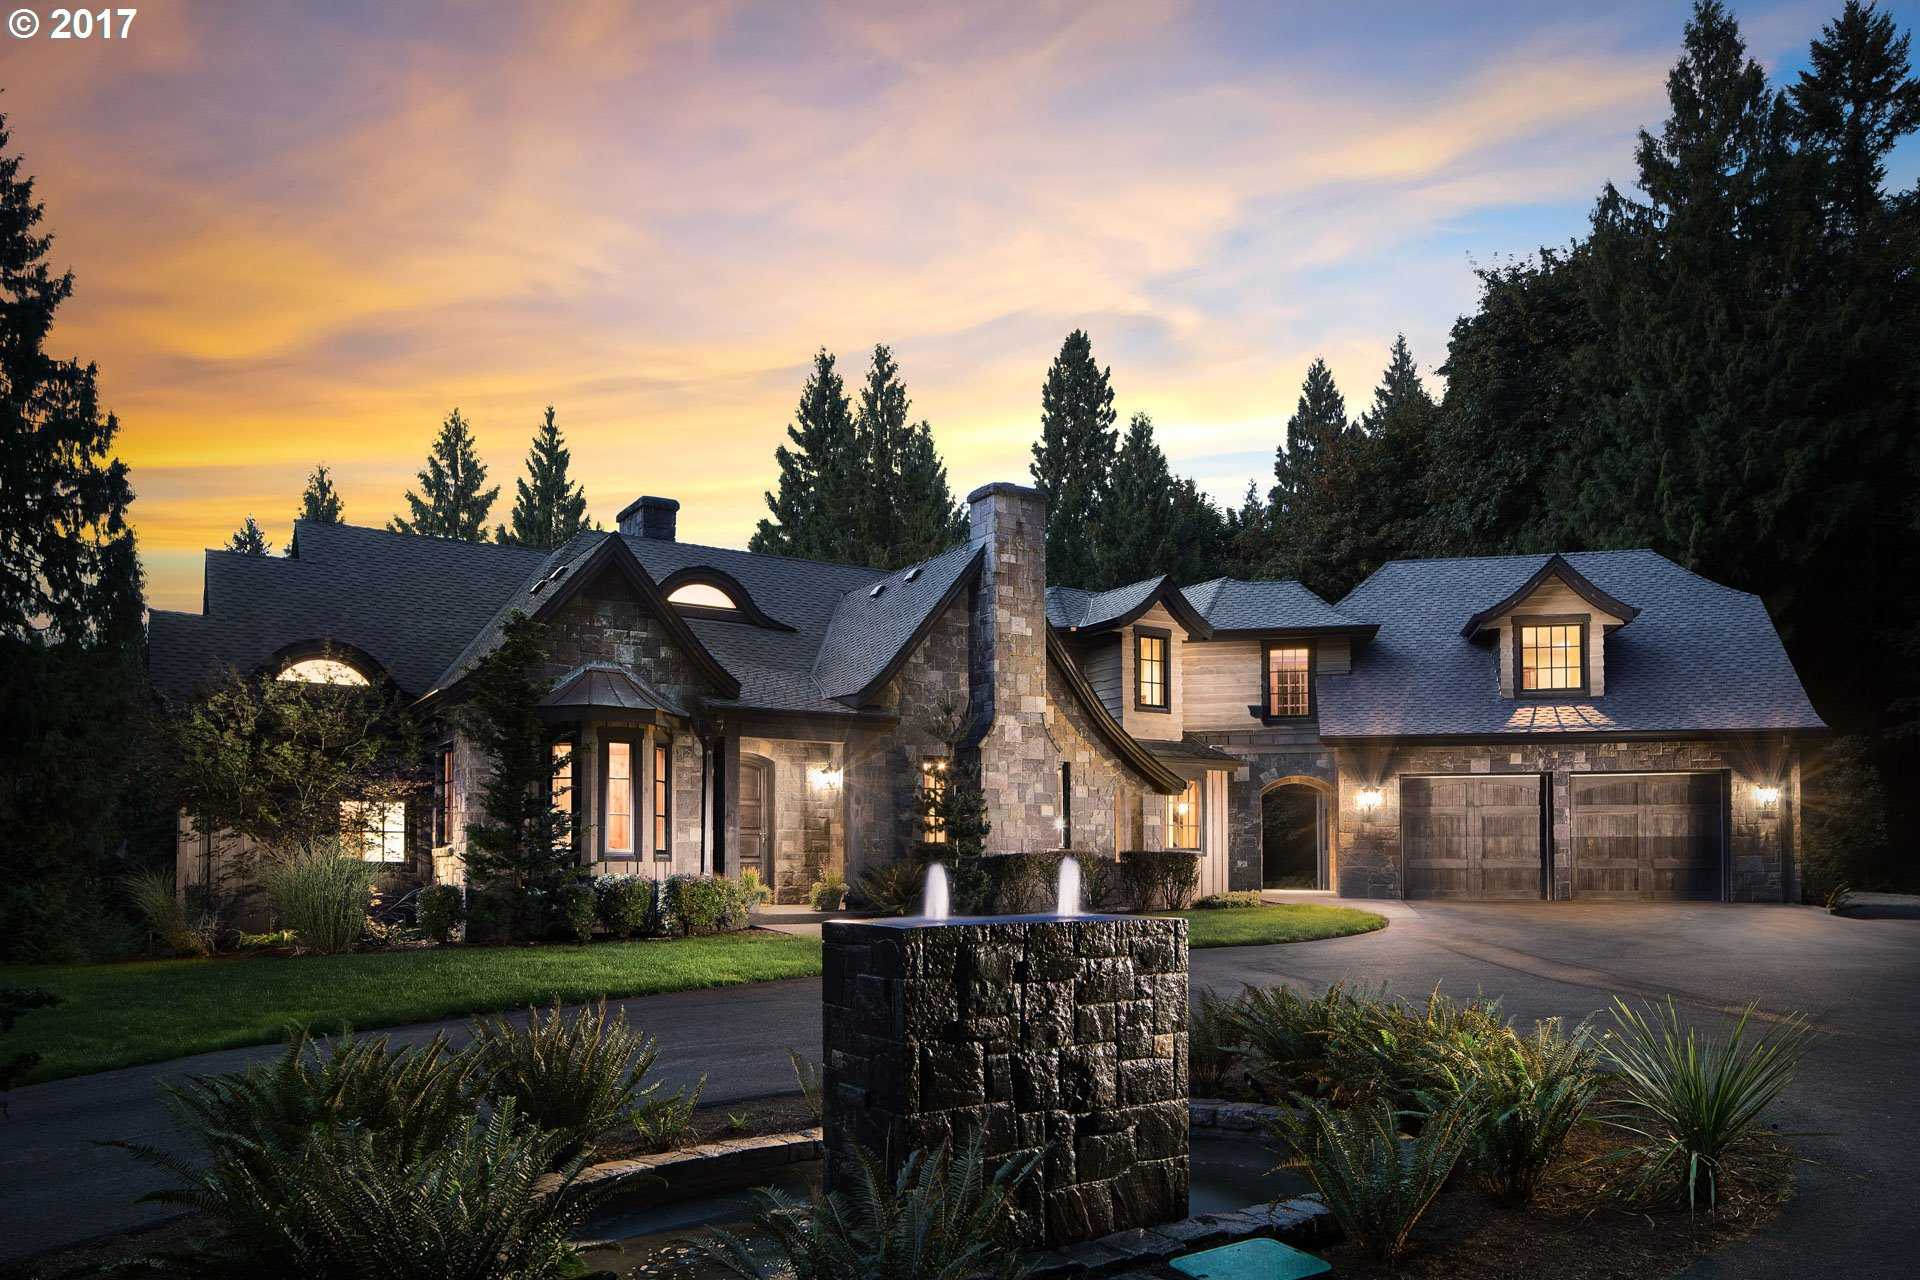 $1,999,000 - 4Br/5Ba -  for Sale in West Linn